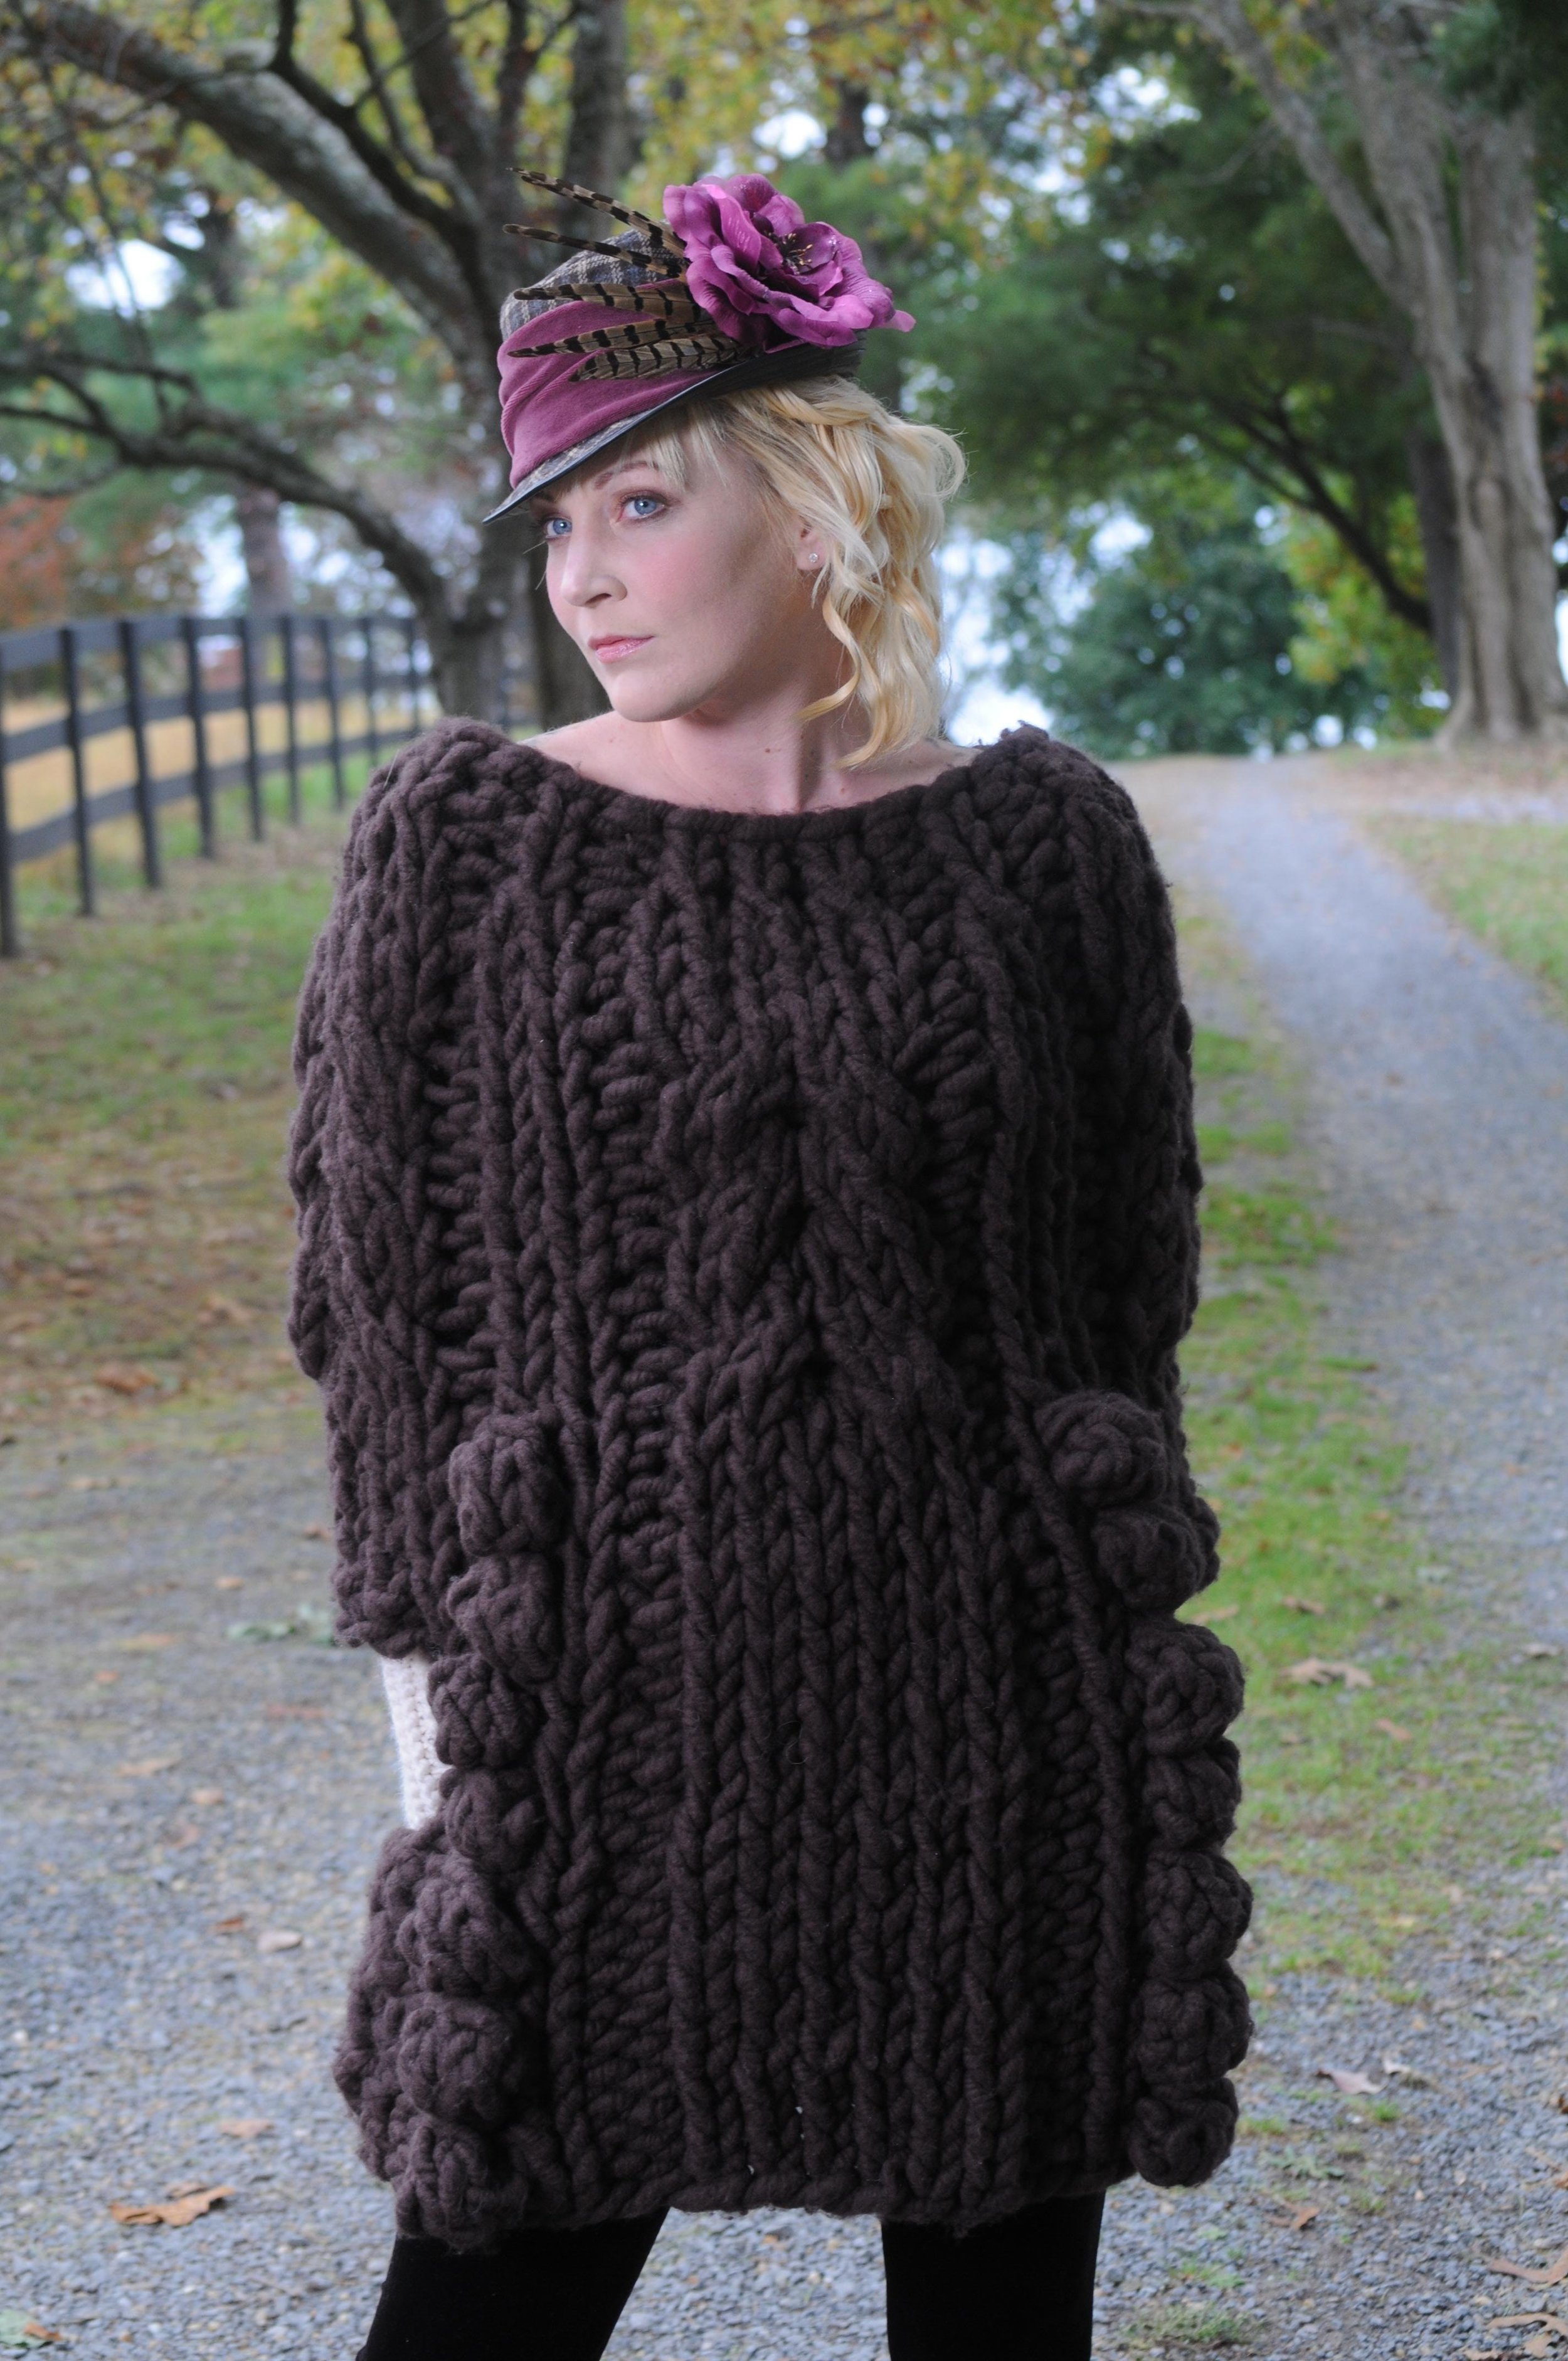 Bobble and Twist is a pullover sweater poncho -coat with side pockets.  Designed by Terri Rosenthal   with a collaboration with Becca Smith of The BagSmith     Hard copy pattern, PDF, Kits and finished garment. Seen in Big Bump yarn by The BagSmith.